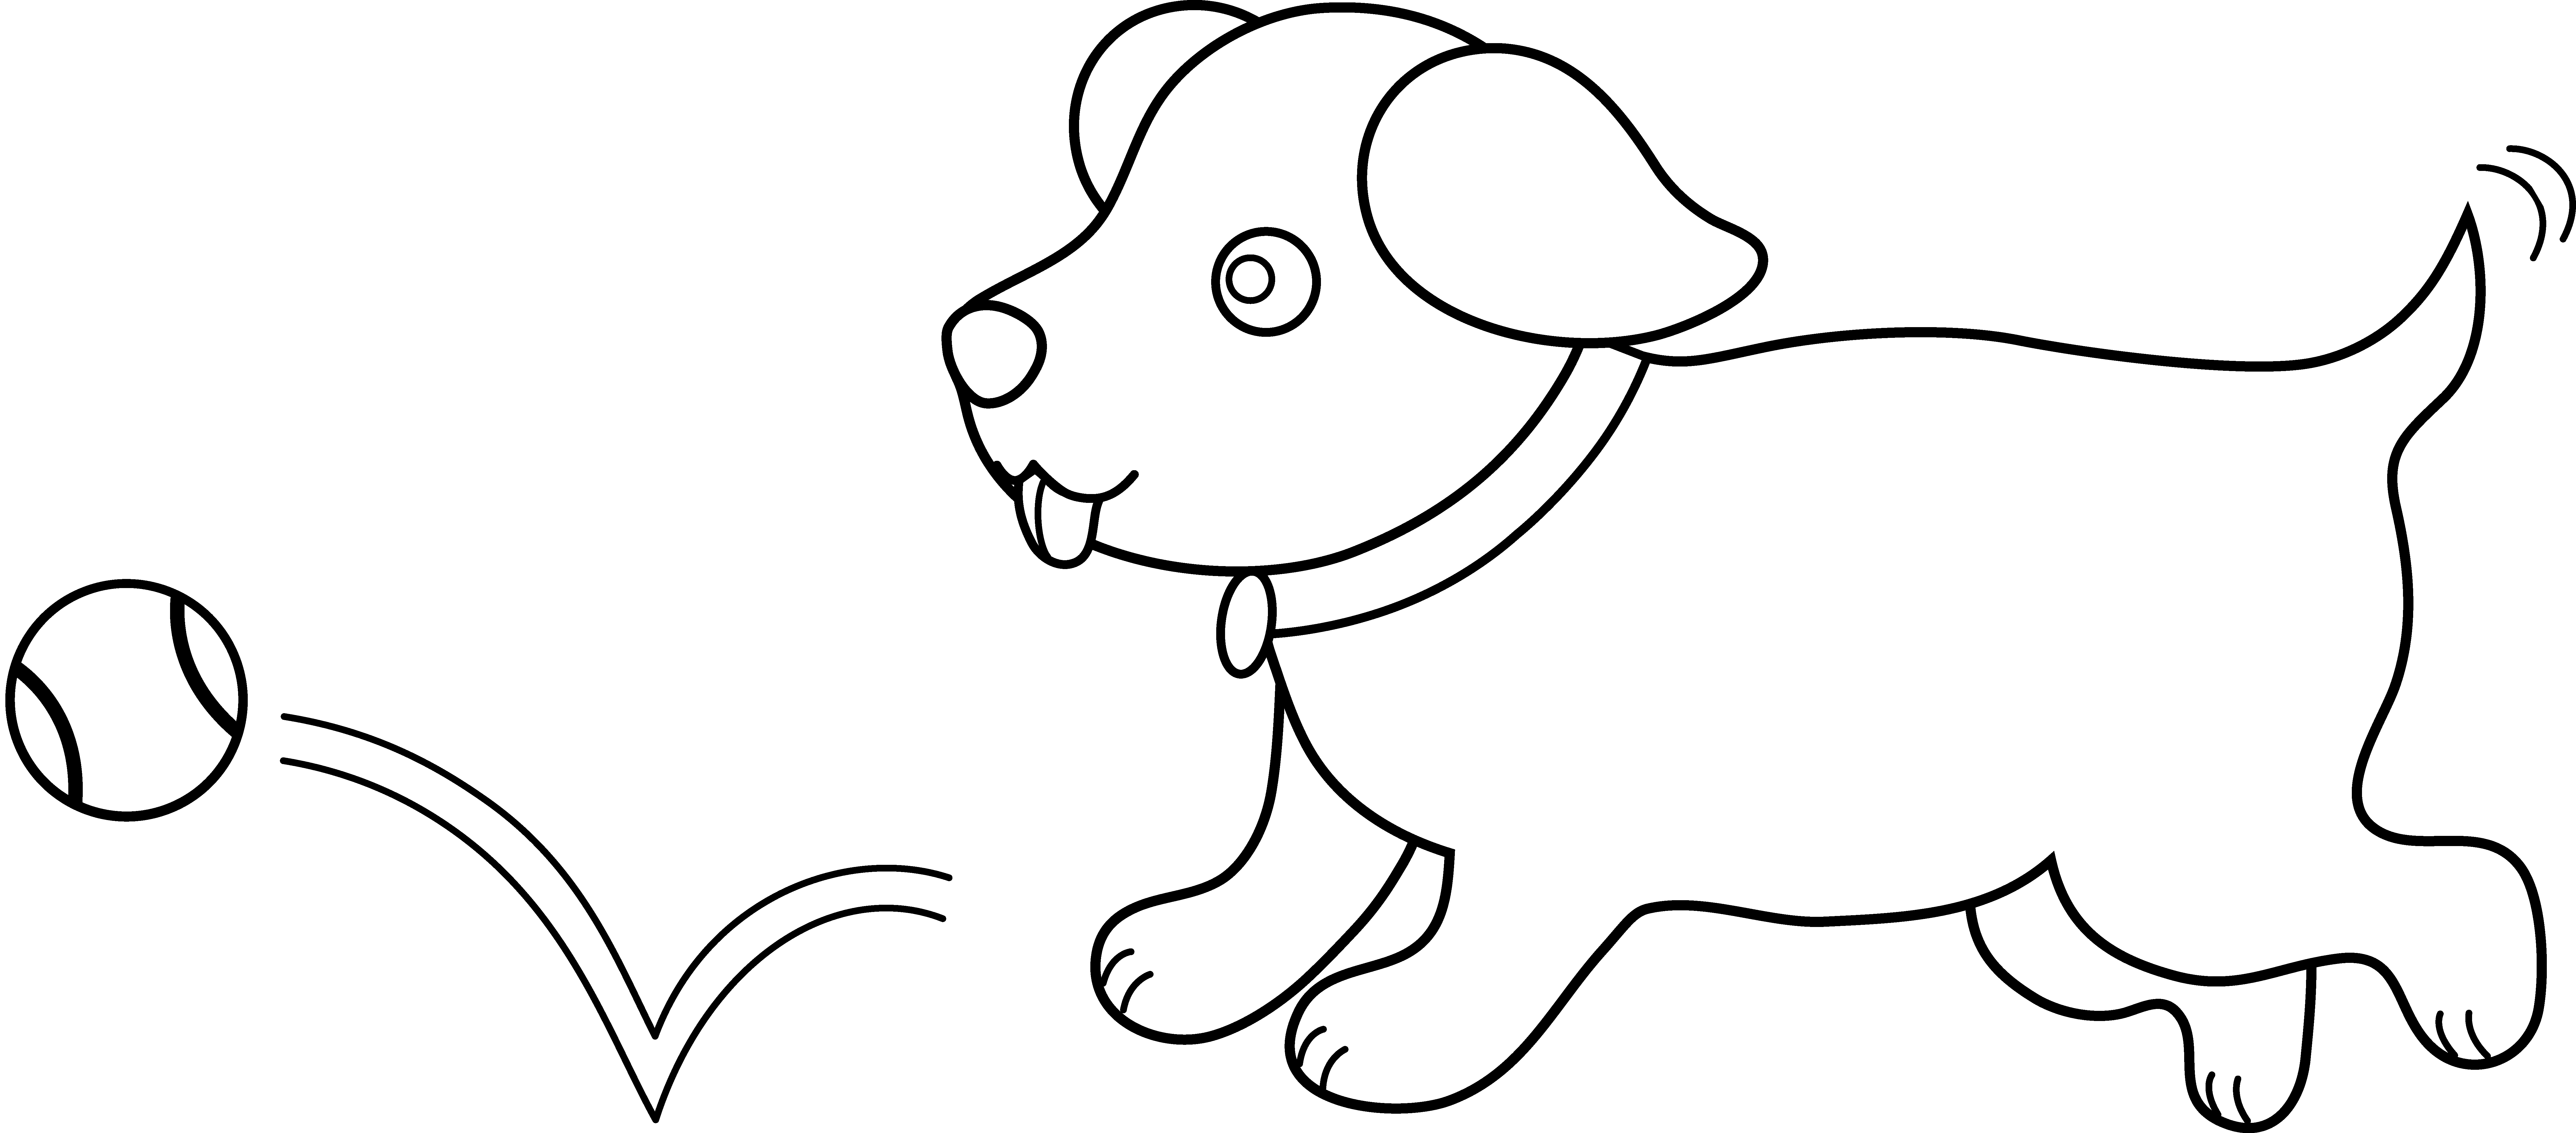 Puppy Clipart Black And White Clipart Panda